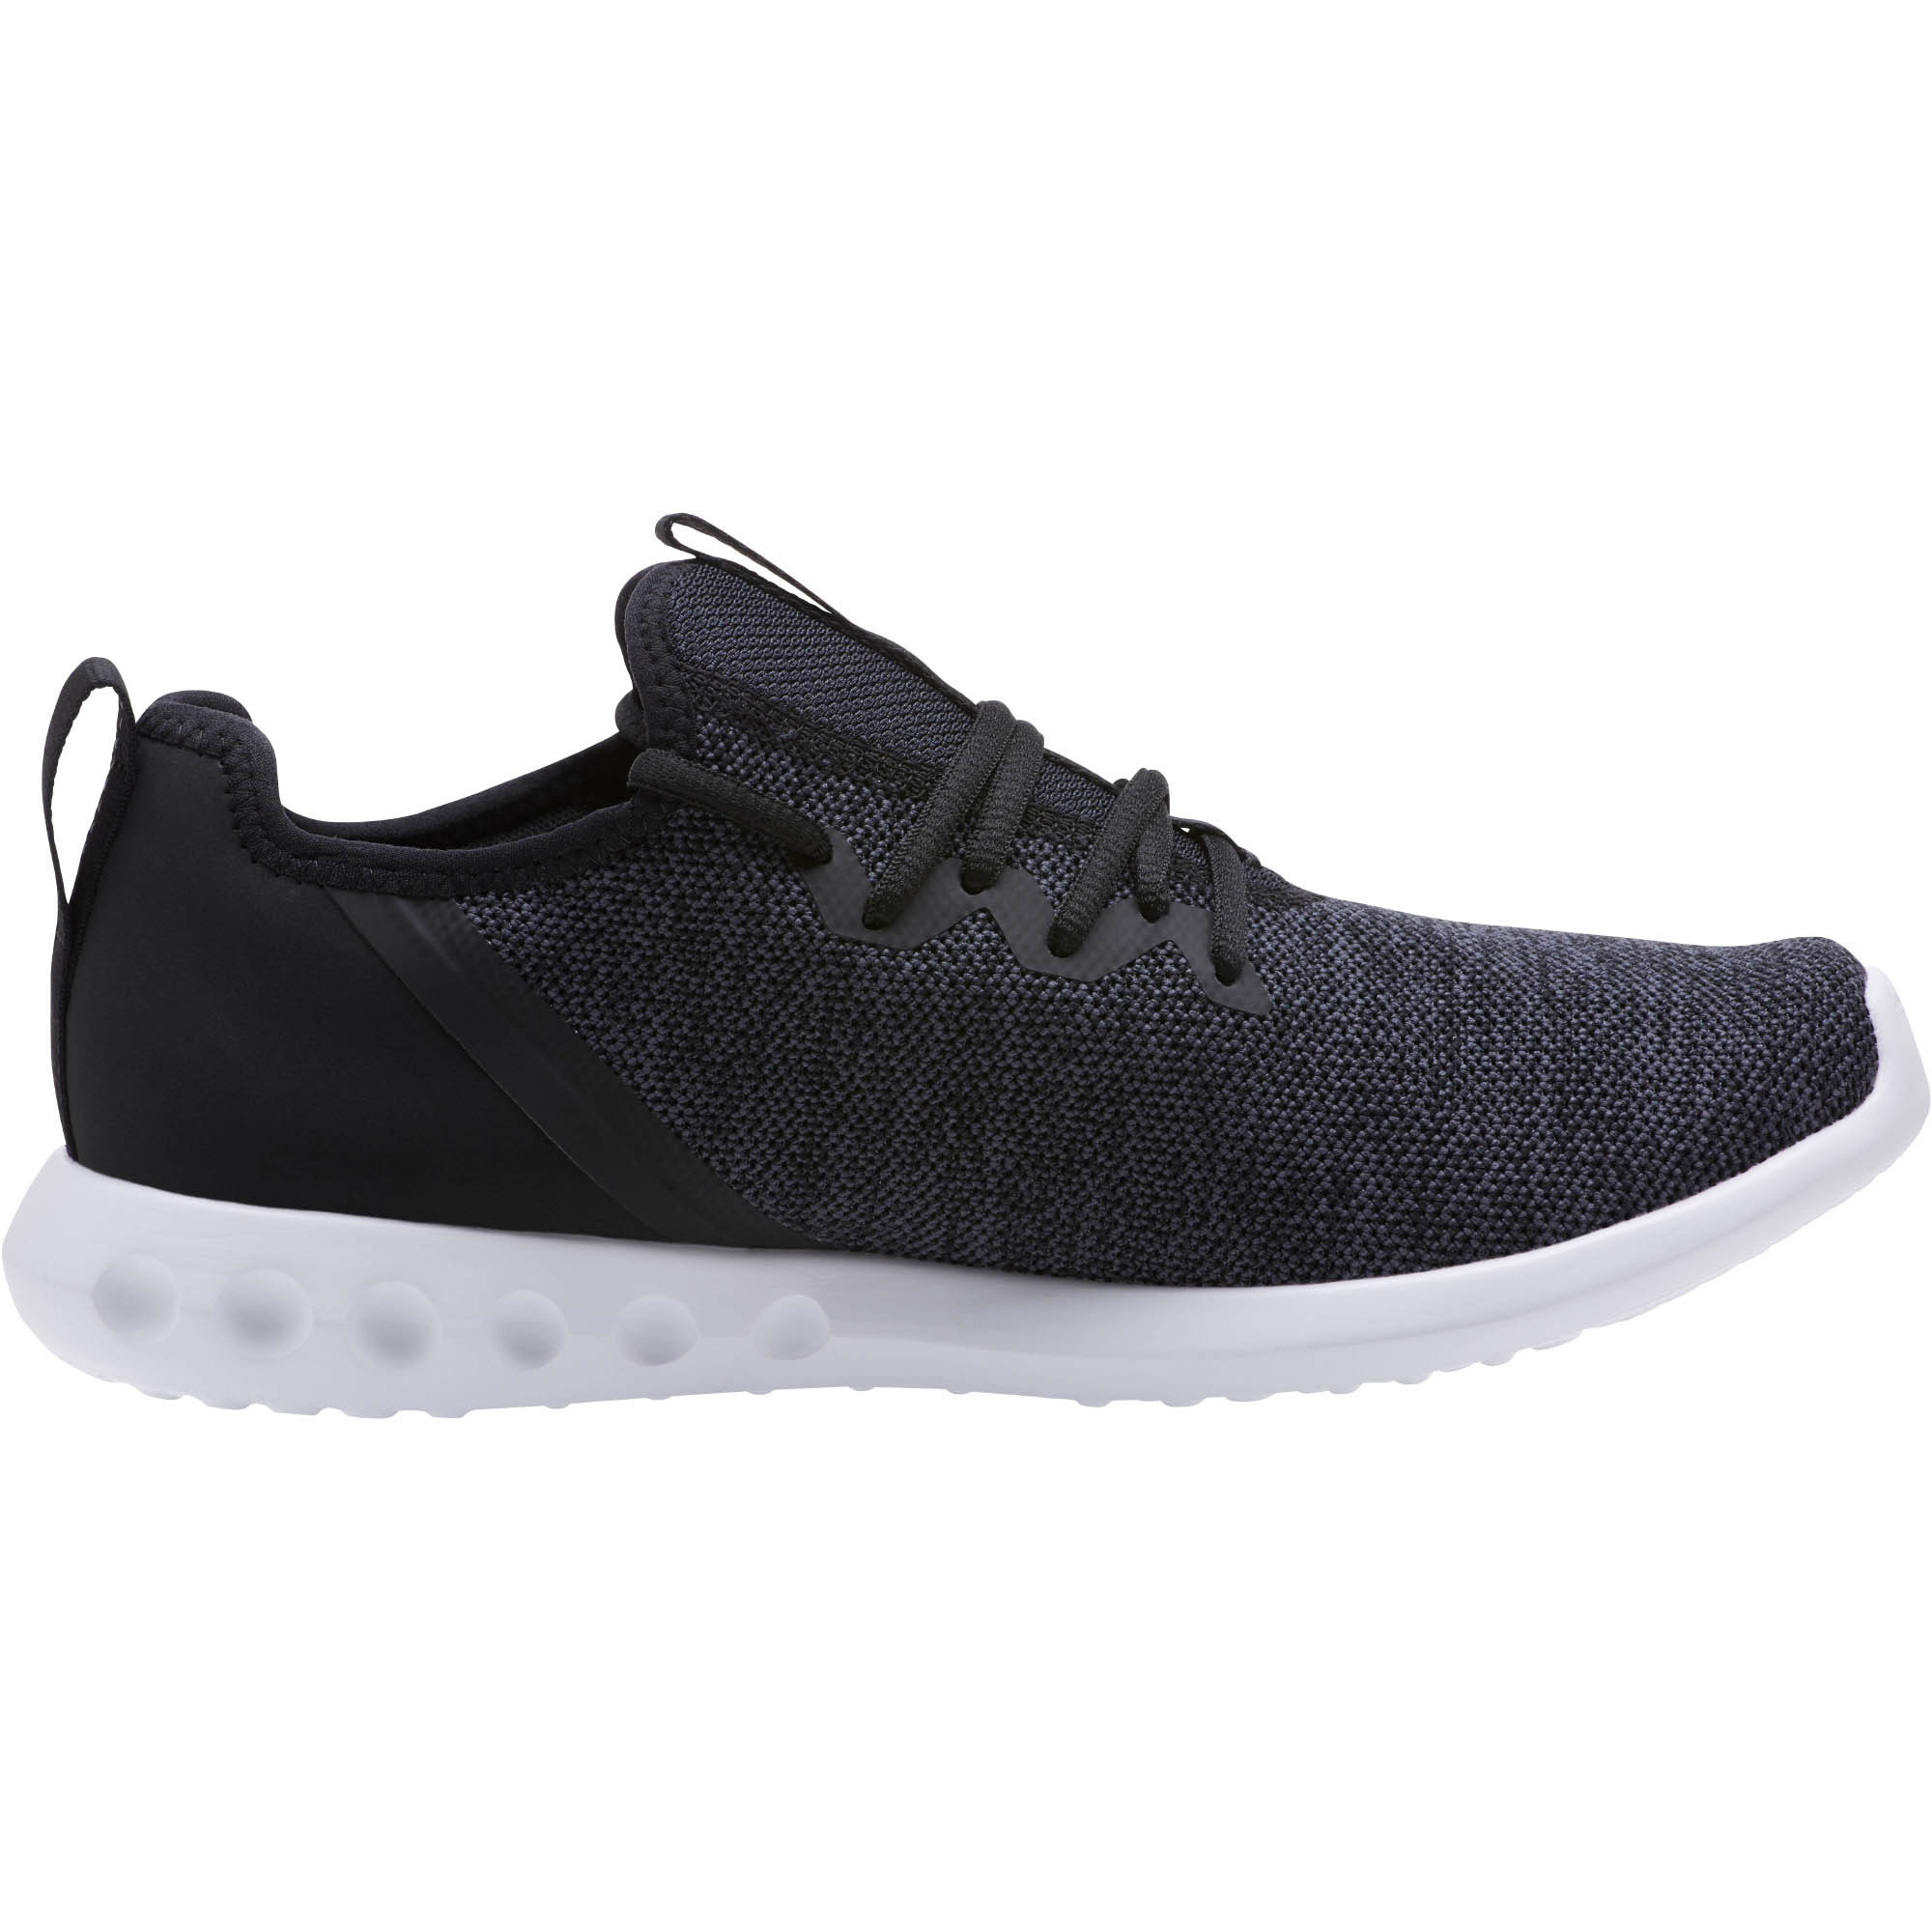 PUMA-Carson-2-X-Knit-Men-039-s-Running-Shoes-Men-Shoe-Running thumbnail 9